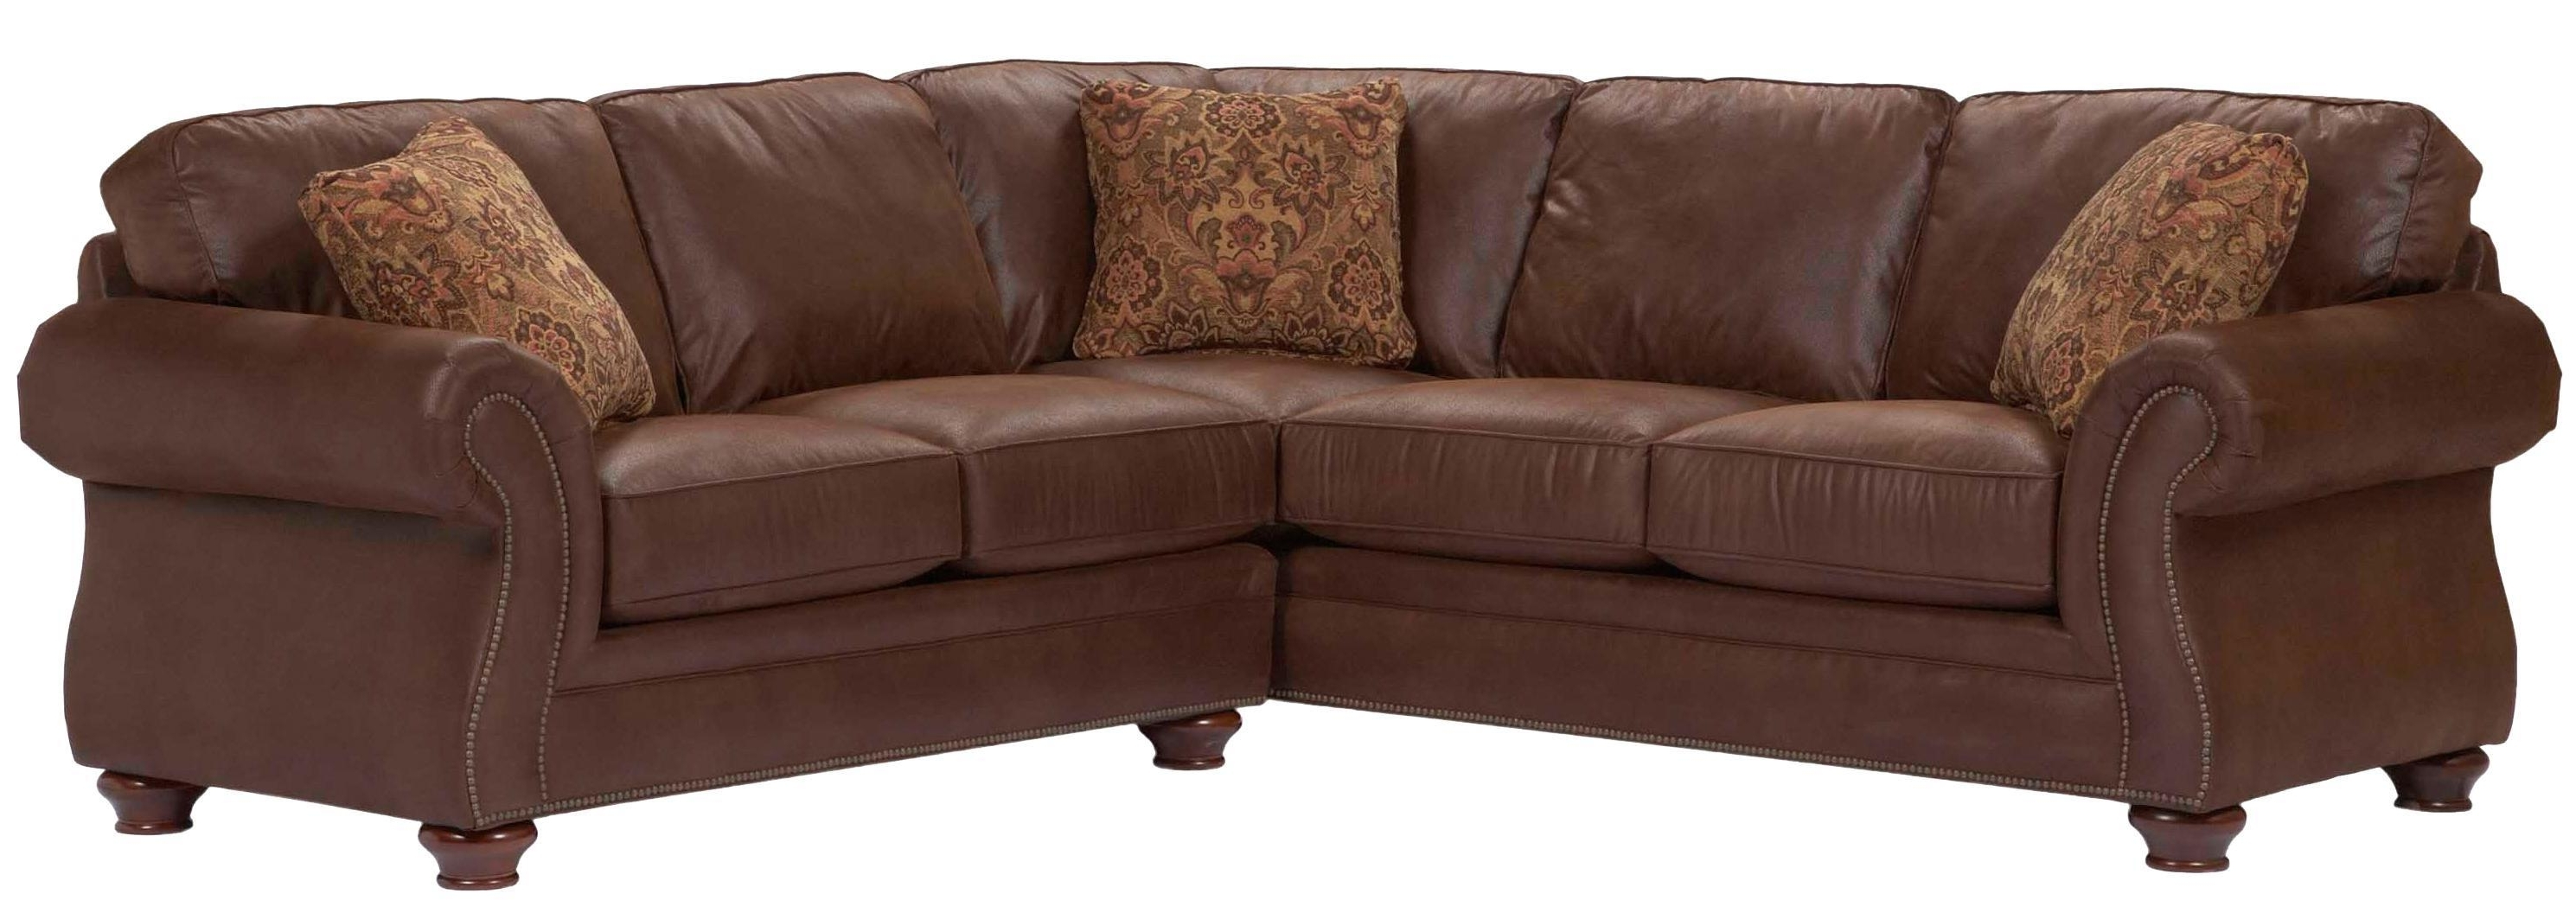 Broyhill Furniture Laramie 2 Piece Corner Sectional Sofa – Ahfa For Most Current Broyhill Sectional Sofas (View 2 of 20)